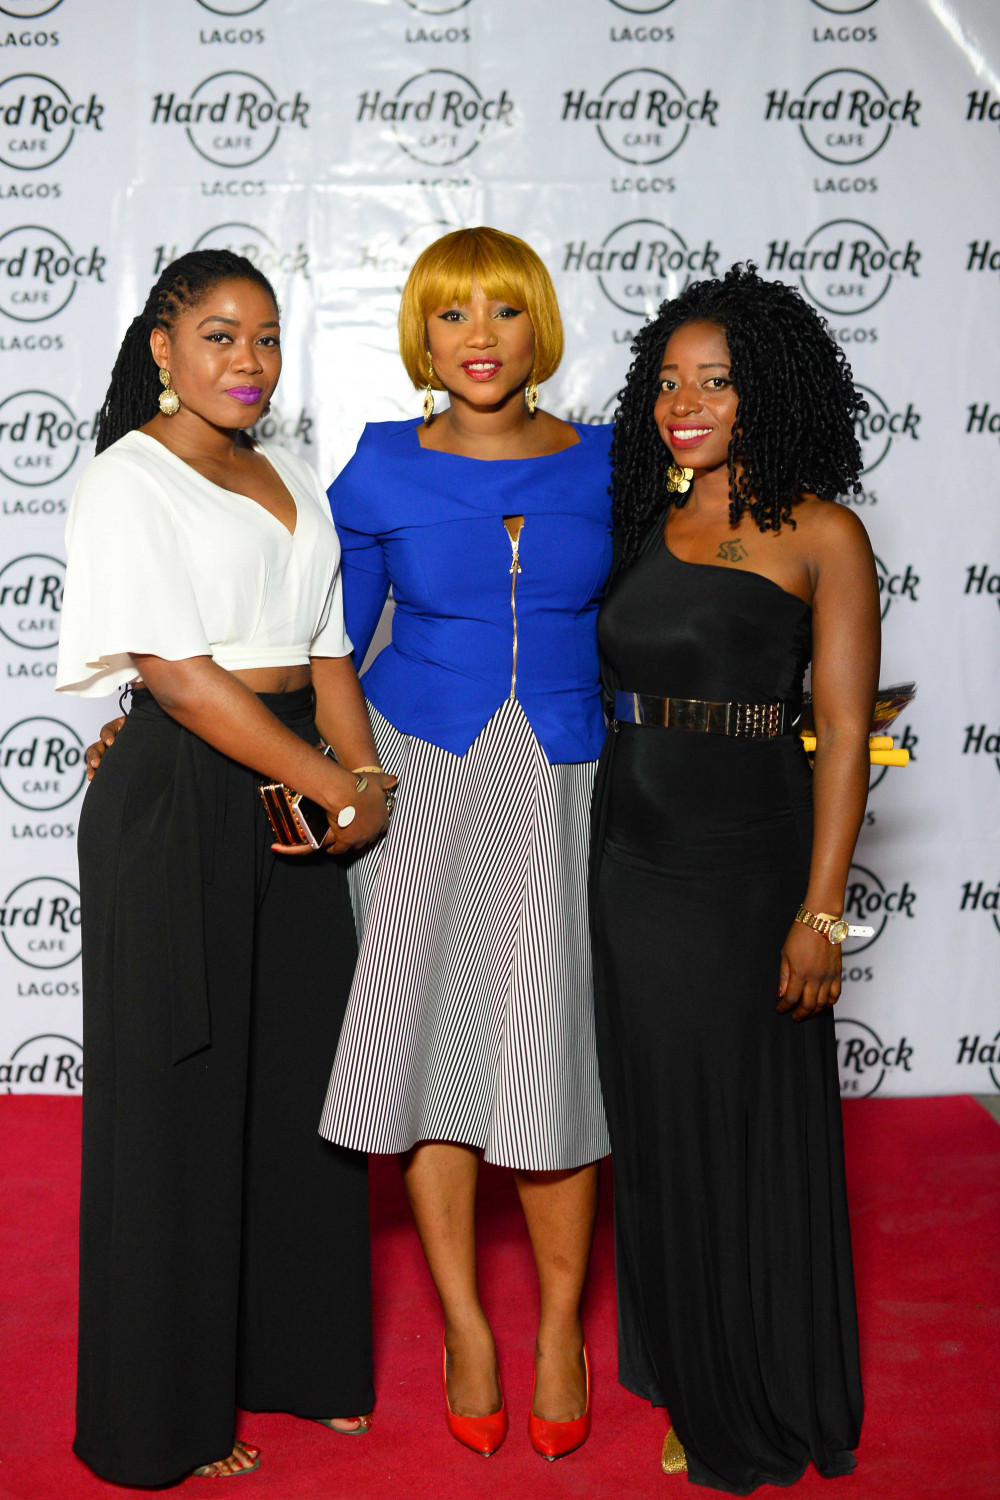 Hard Rock Cafe Lagos Launch BellaNaija DSC_0160